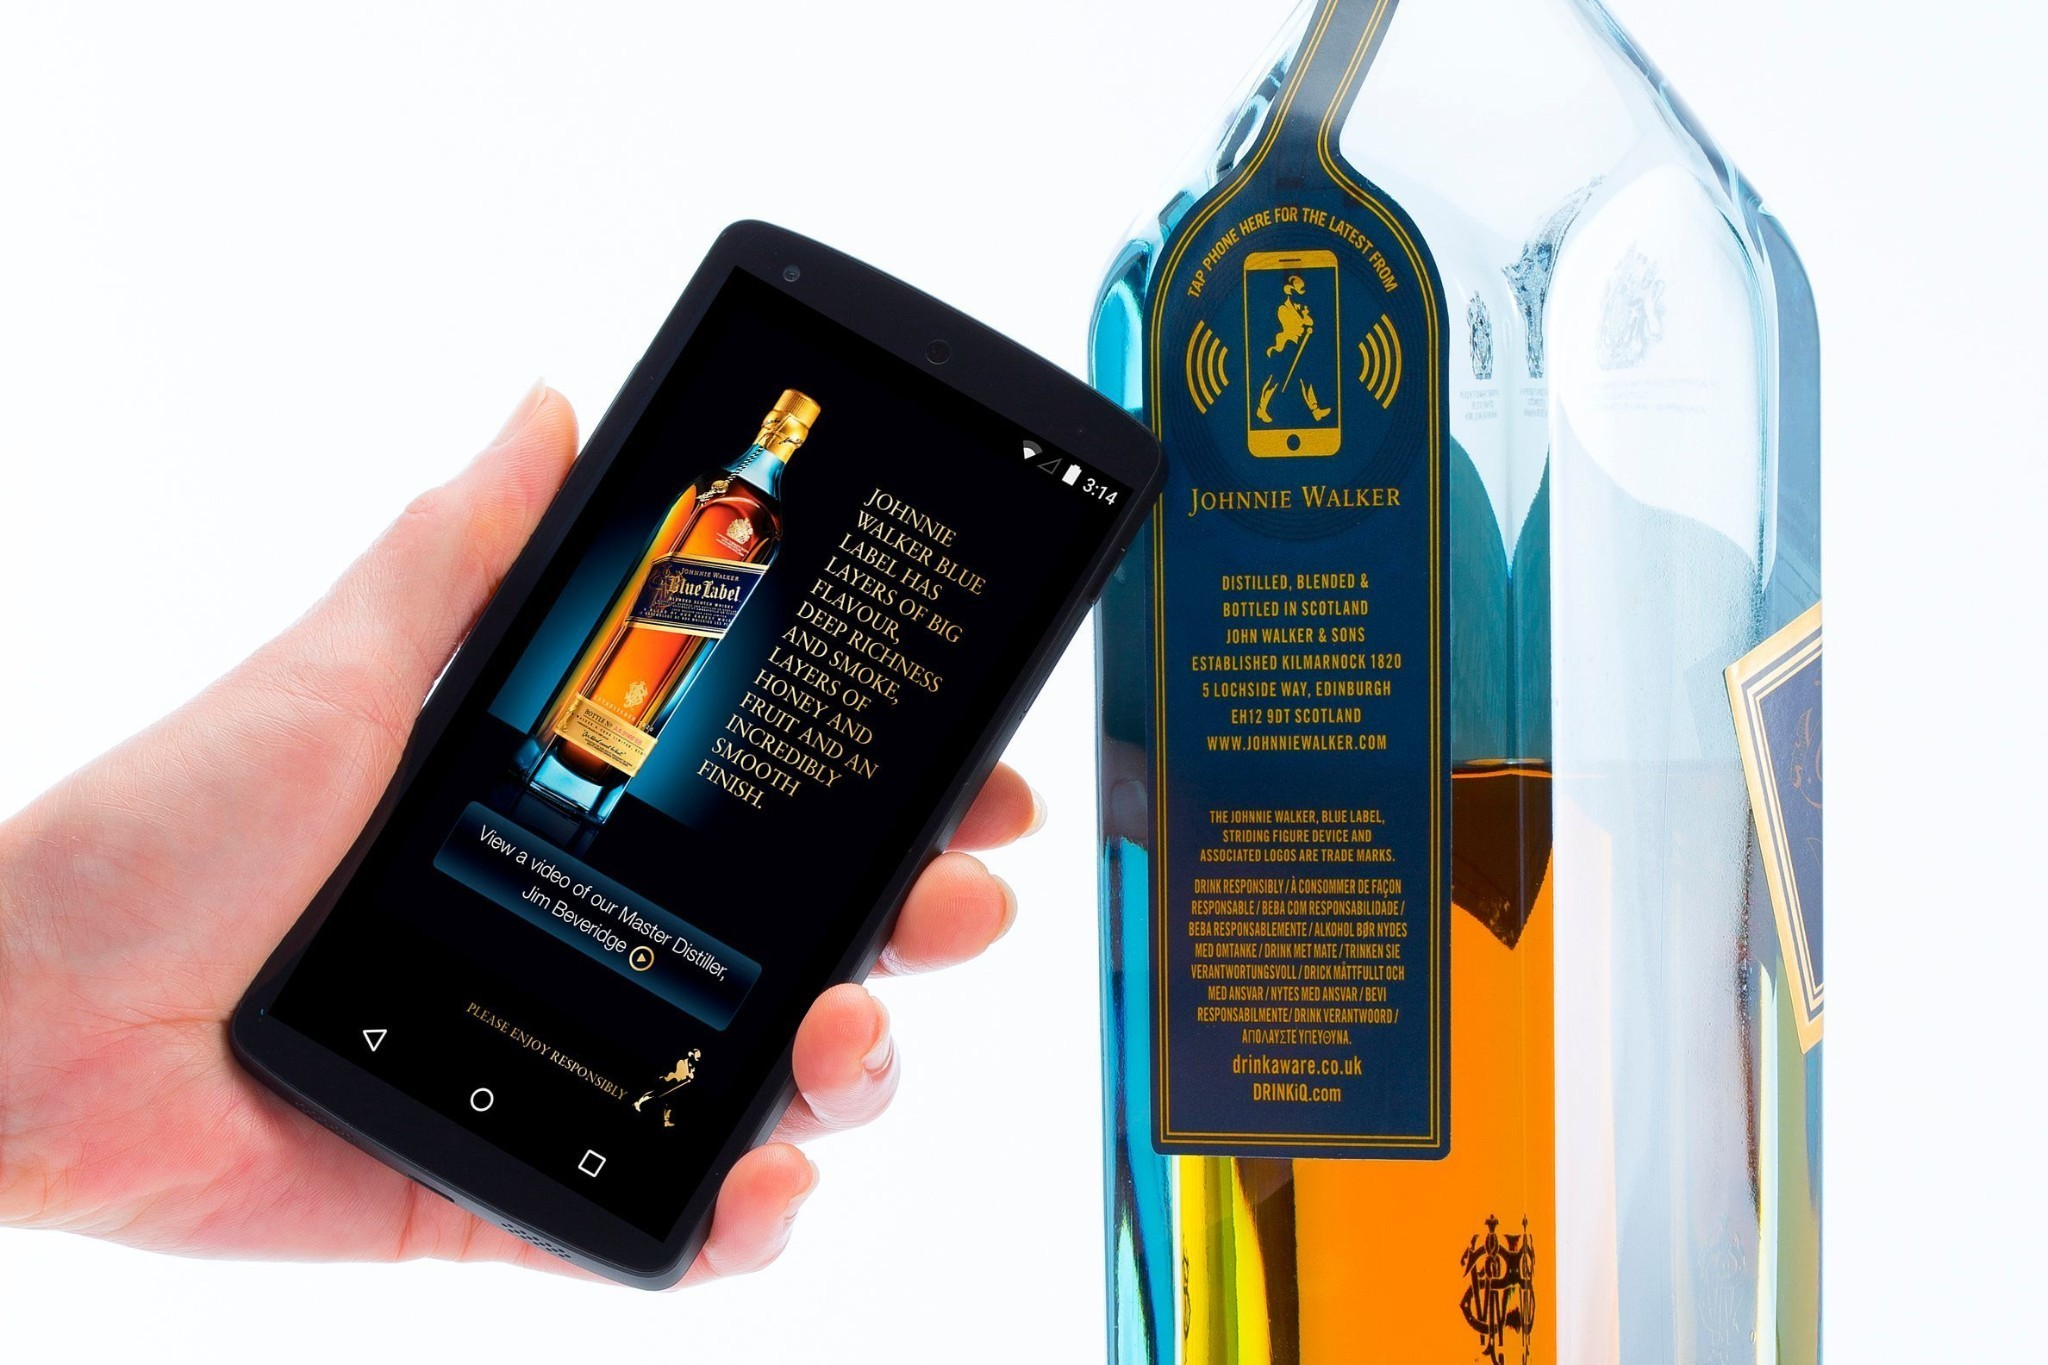 Behold, the NFC-enabled smart whisky bottle